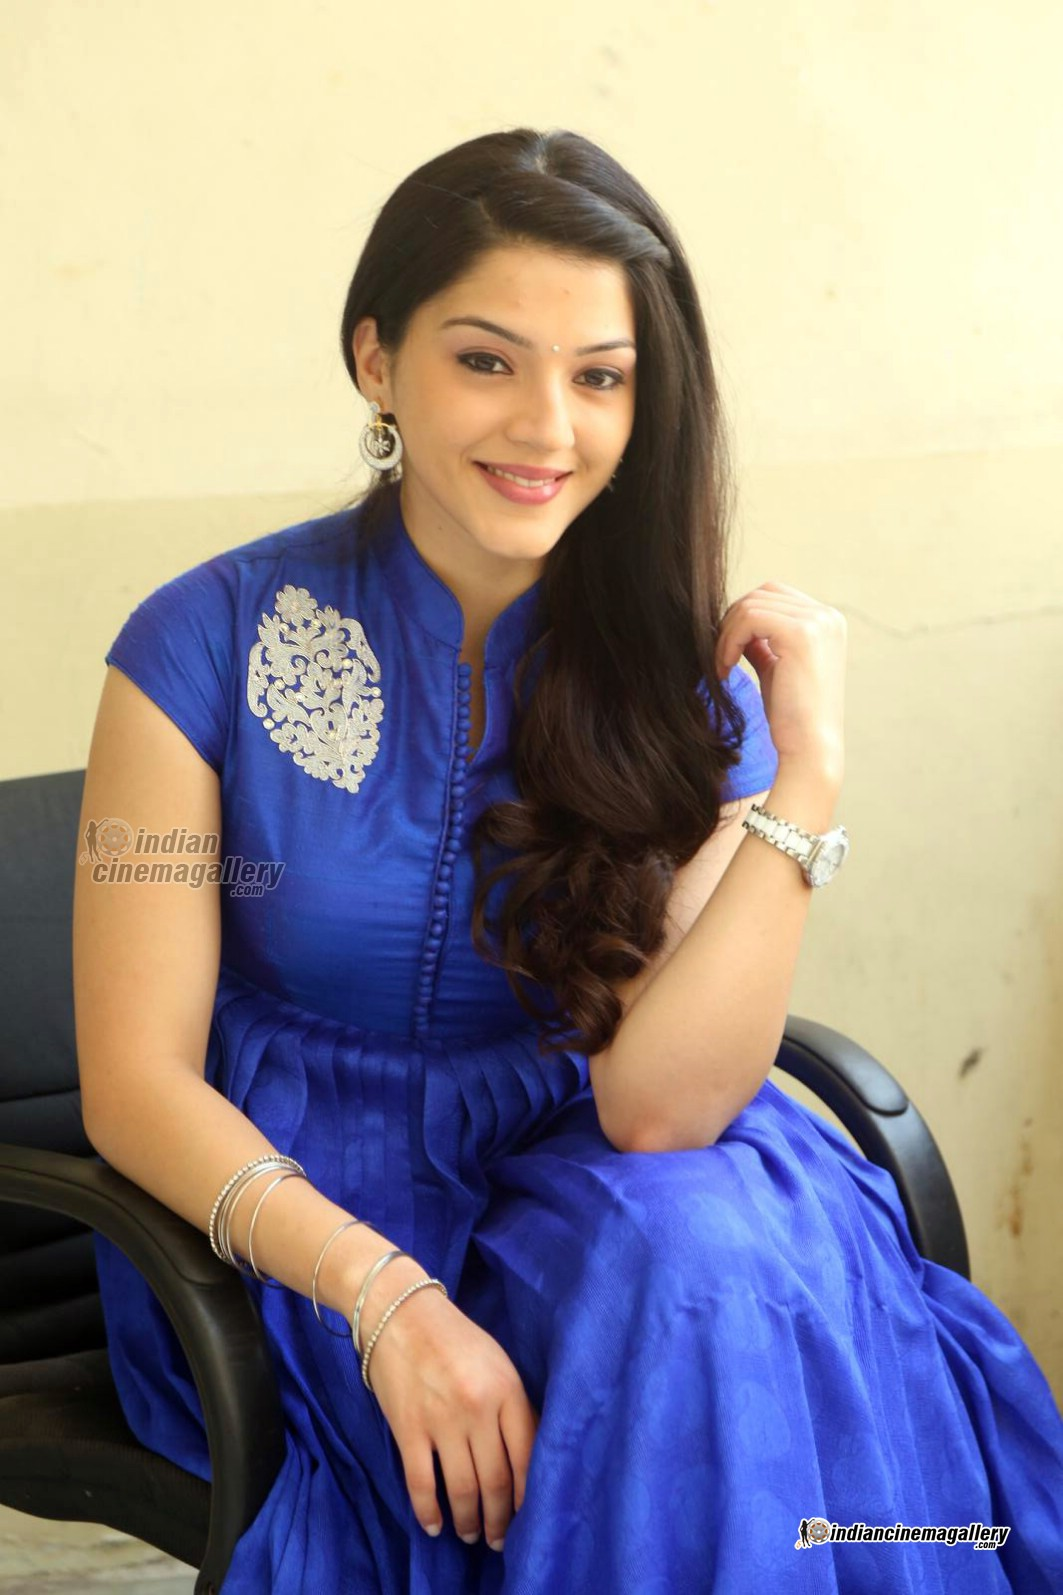 mehreen-in-blue-dress-february-2016-stills-18532